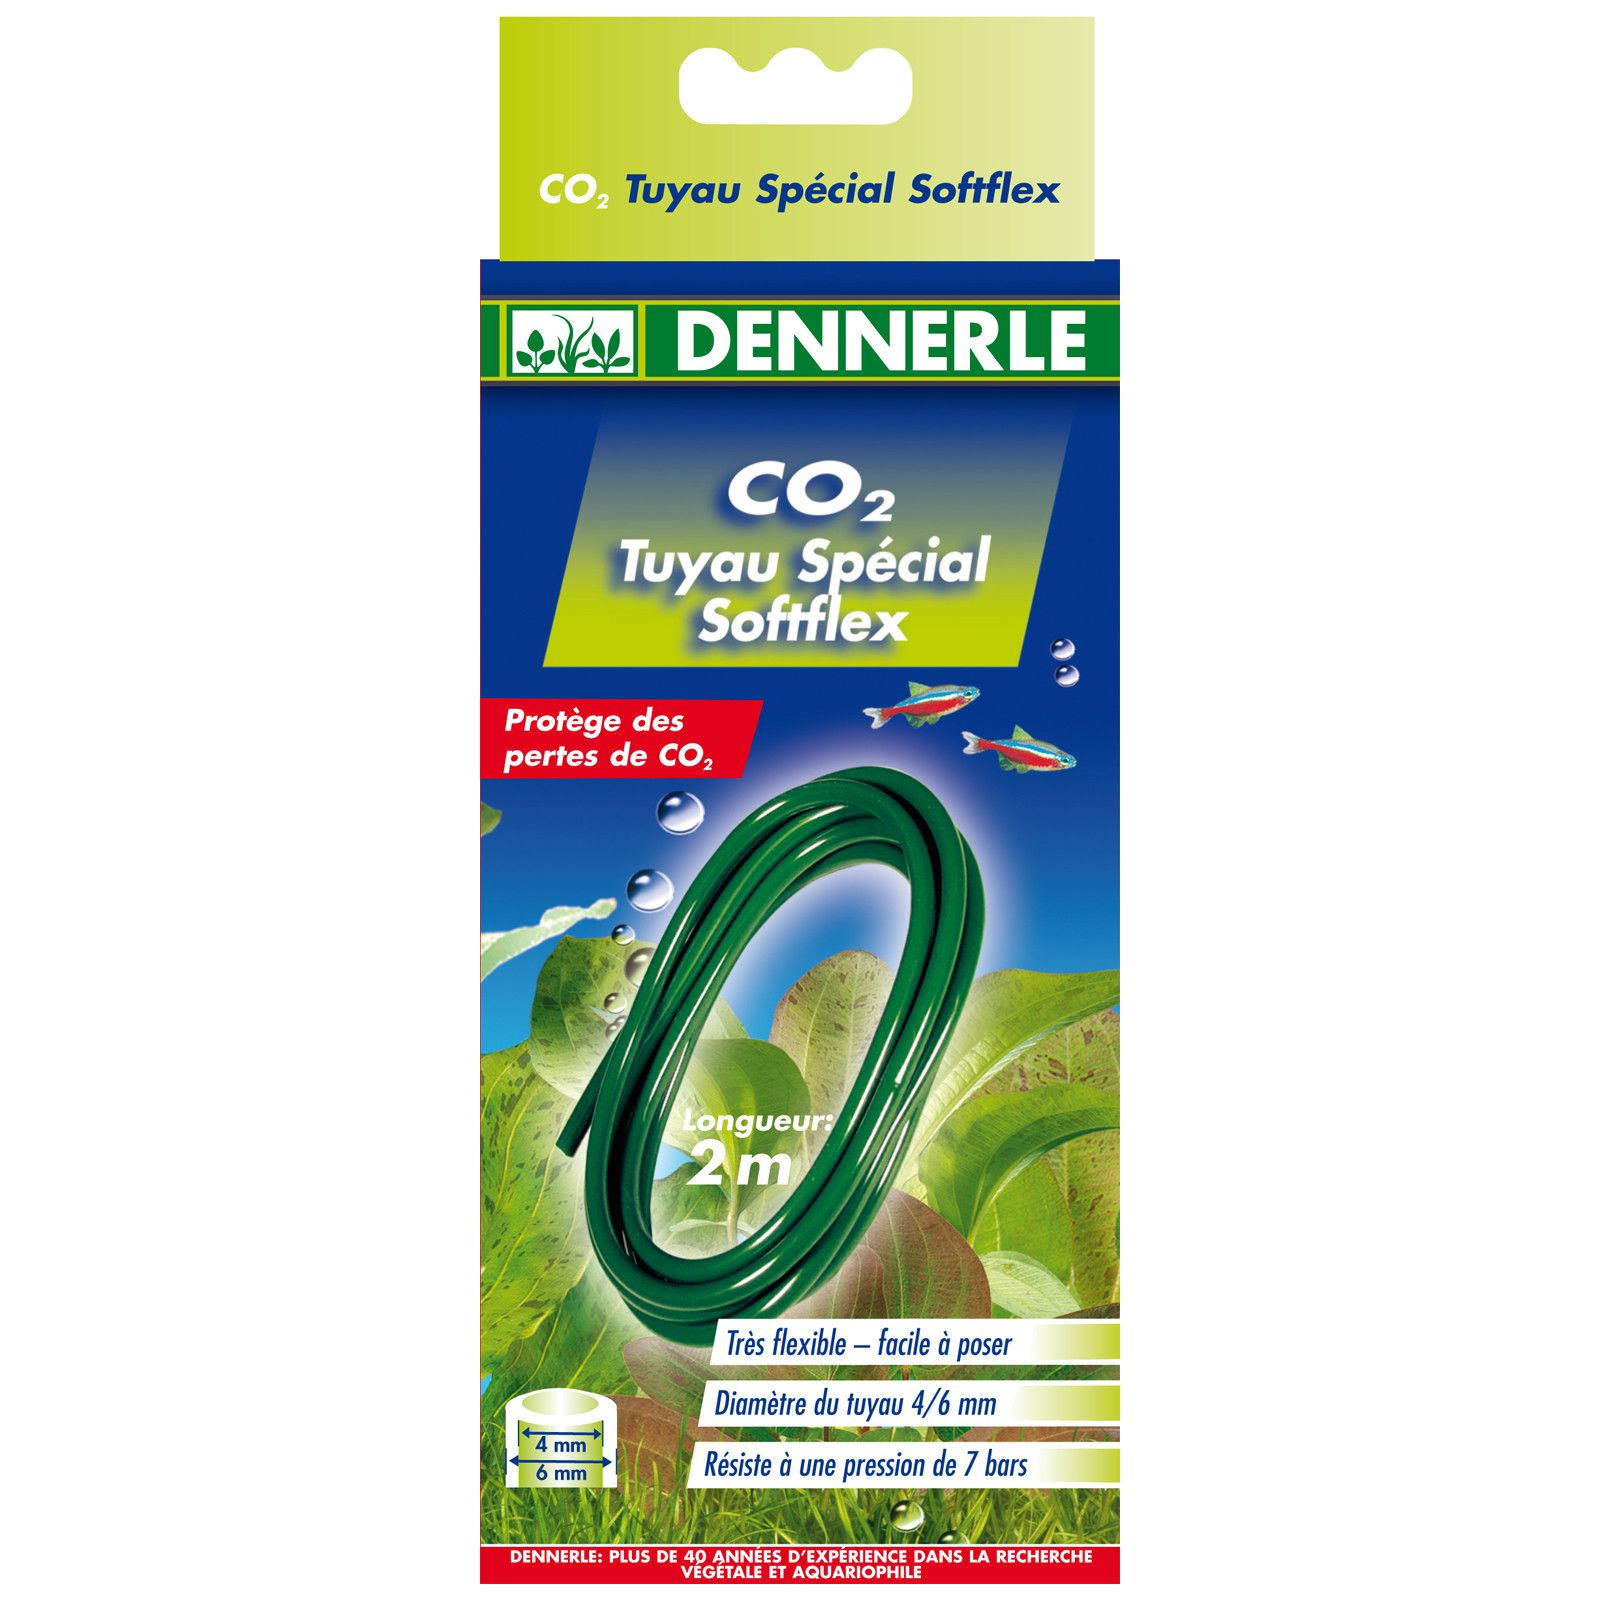 Dennerle - CO2 Schlauch Softflex - 2 m